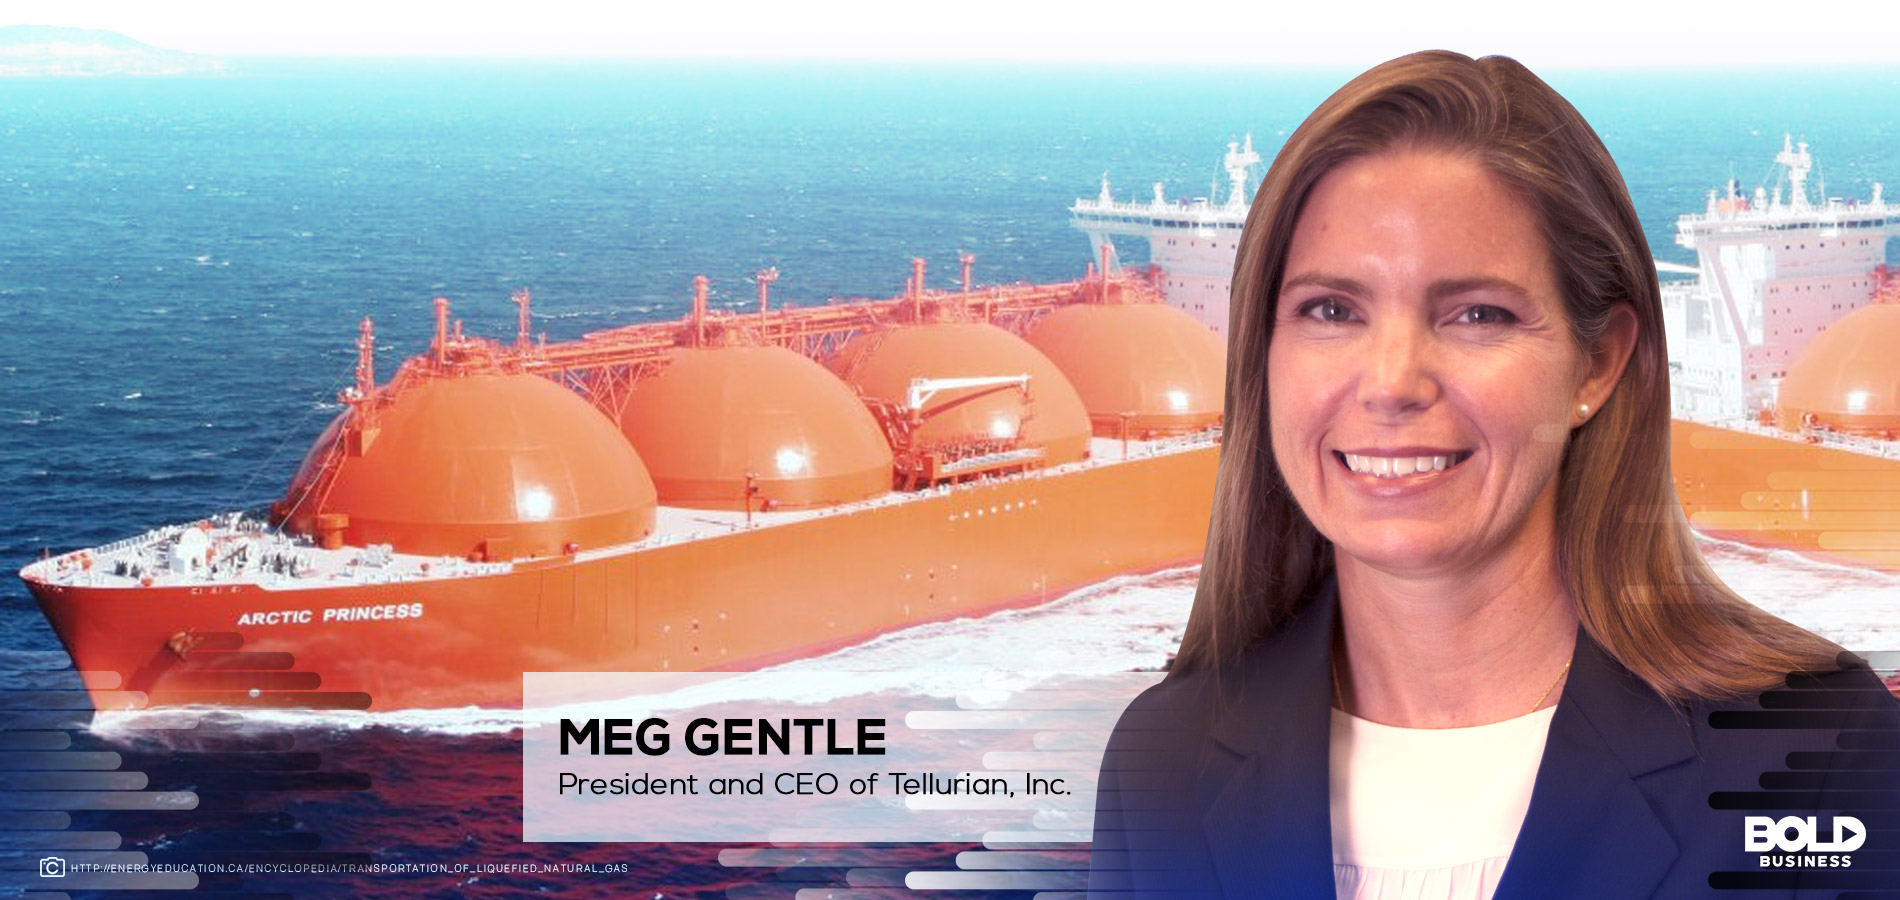 Meg Gentle, President and CEO of Tellurion, Inc